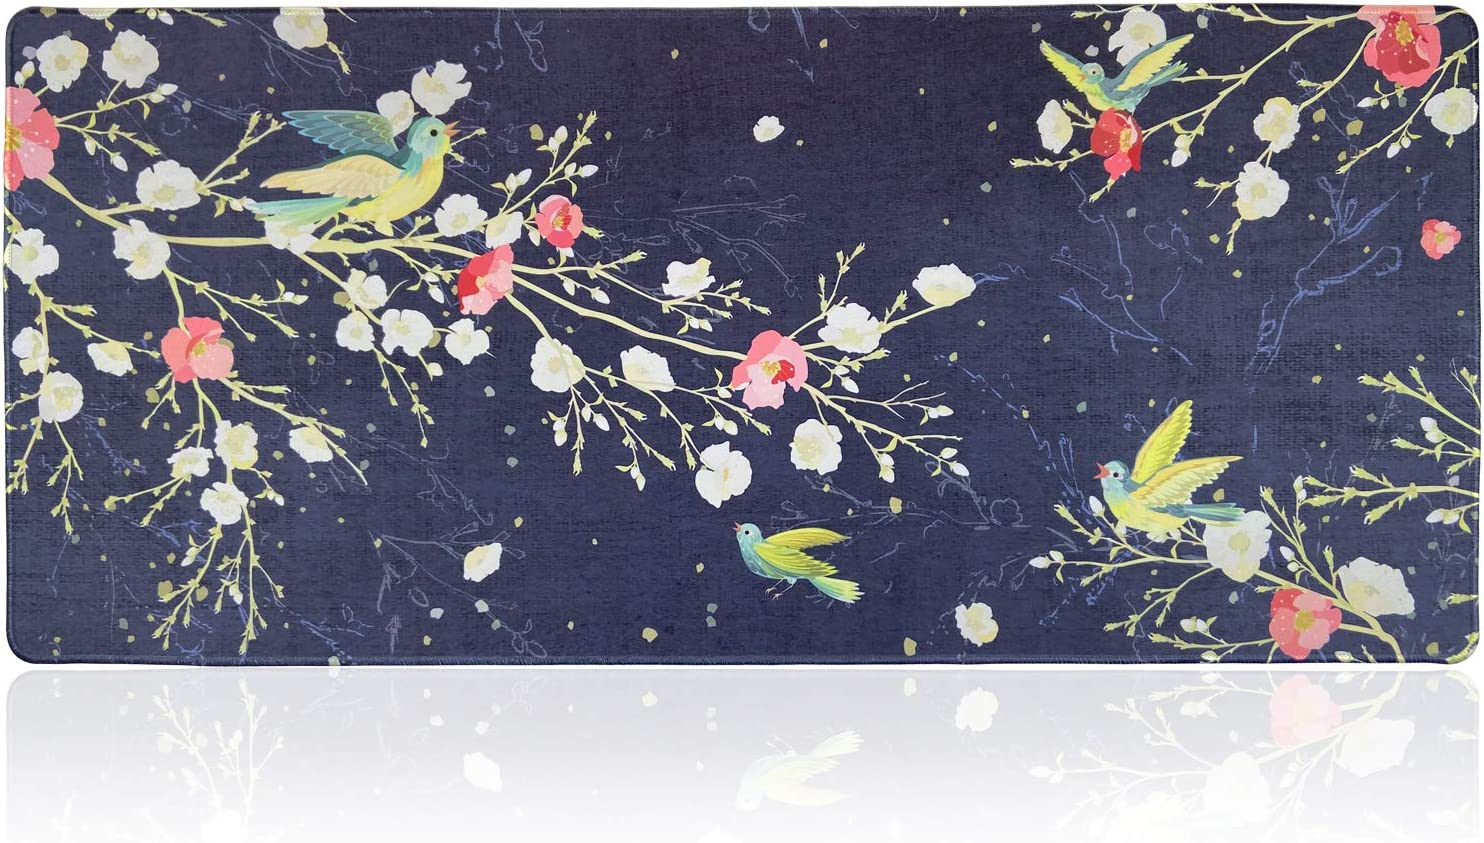 Extended Large Gaming Mouse Pad with Floral Design, XXL Mousepad-35.4''x15.7''x0.12''(0.3cm Thick), Office Desk Pad Keyboard Mat with Stitched Edges, Non-Slip Base, Water-Resistant,Flower & Birds